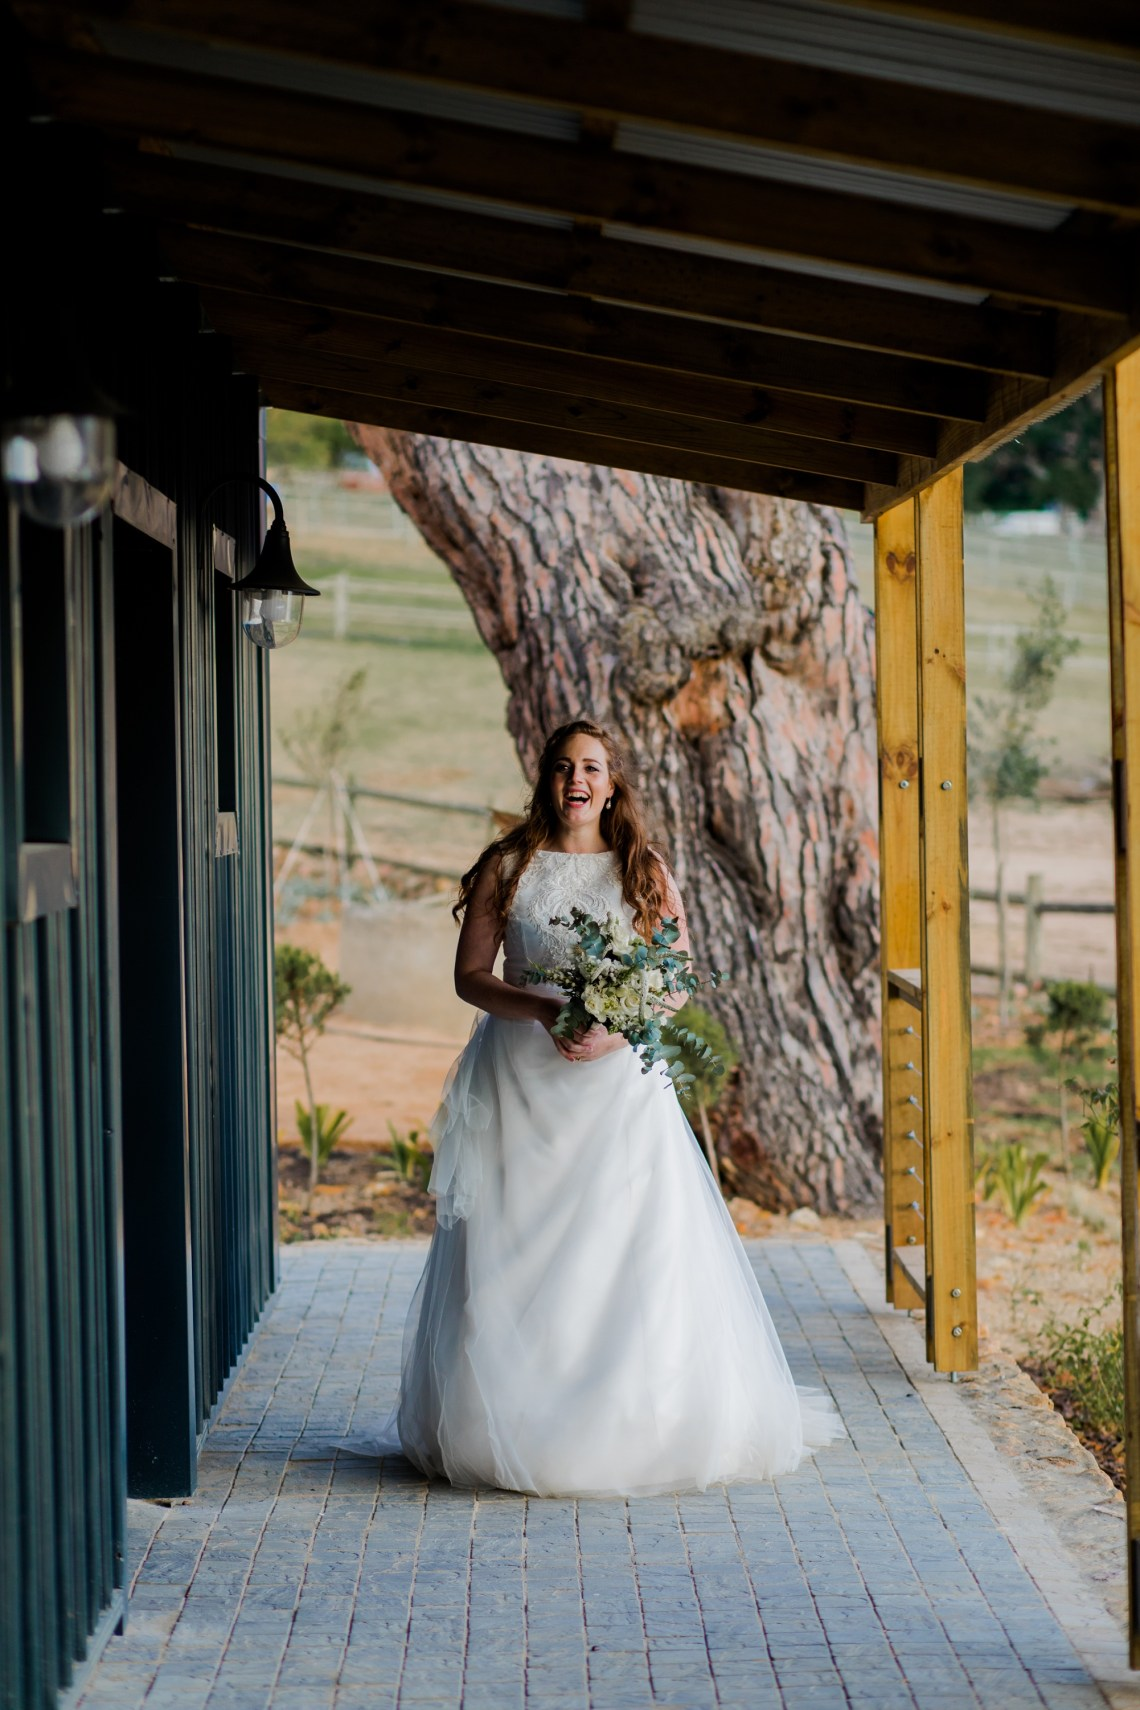 Villiersdorp Wedding Venue-0288